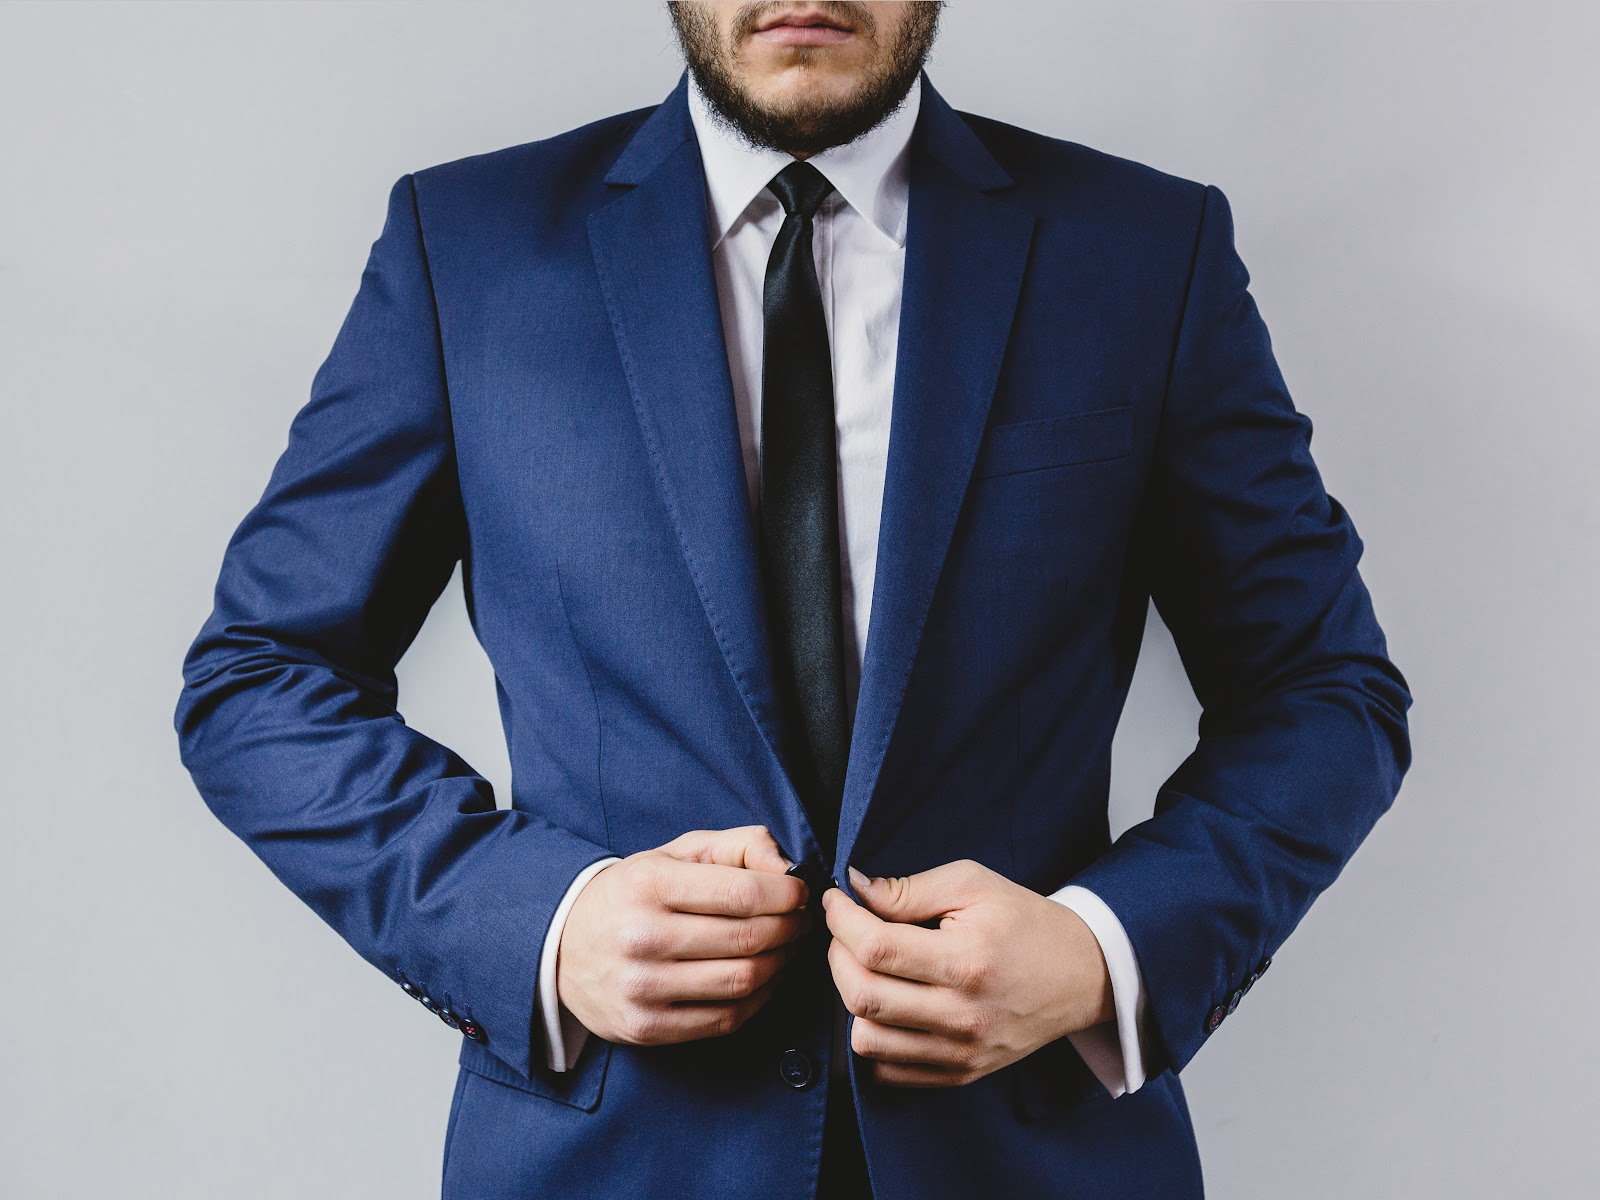 suit-portrait-preparation-wedding.jpg